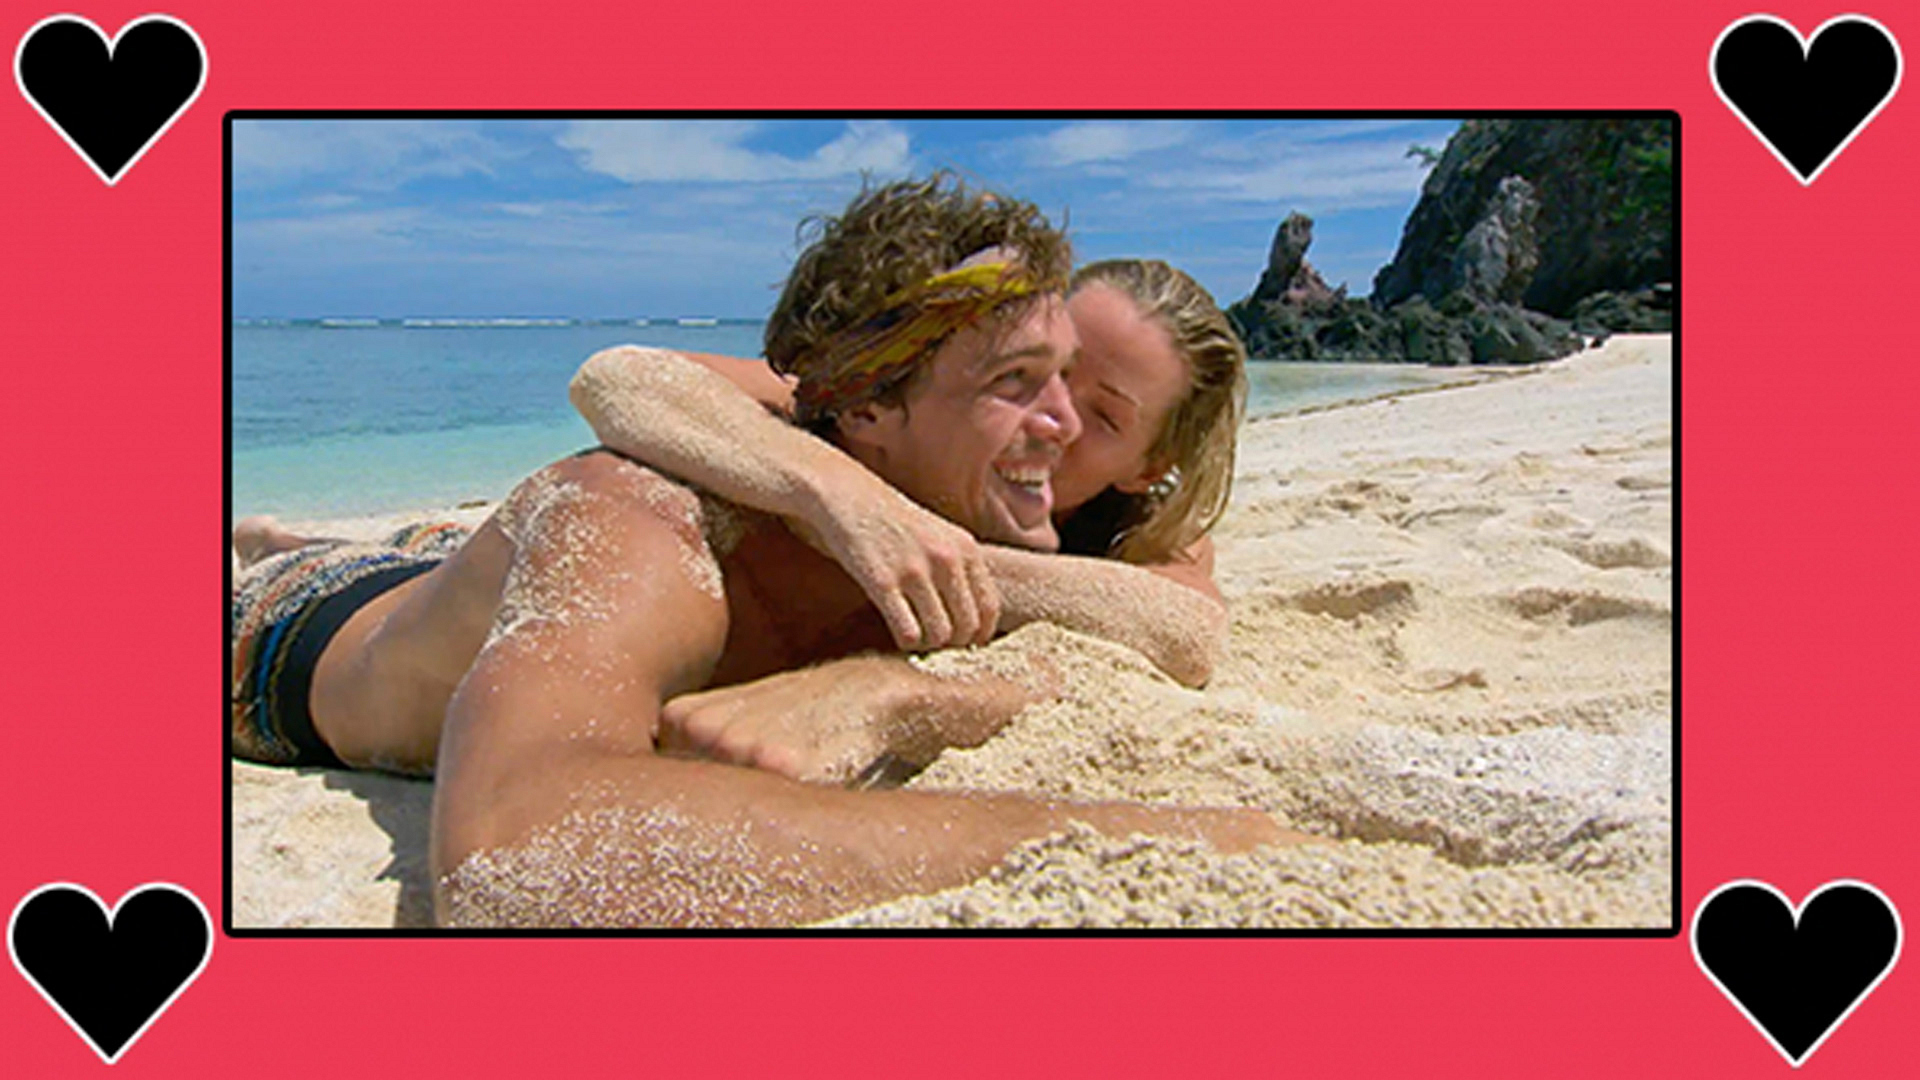 Cbs survivor couples hookup anniversary ideas